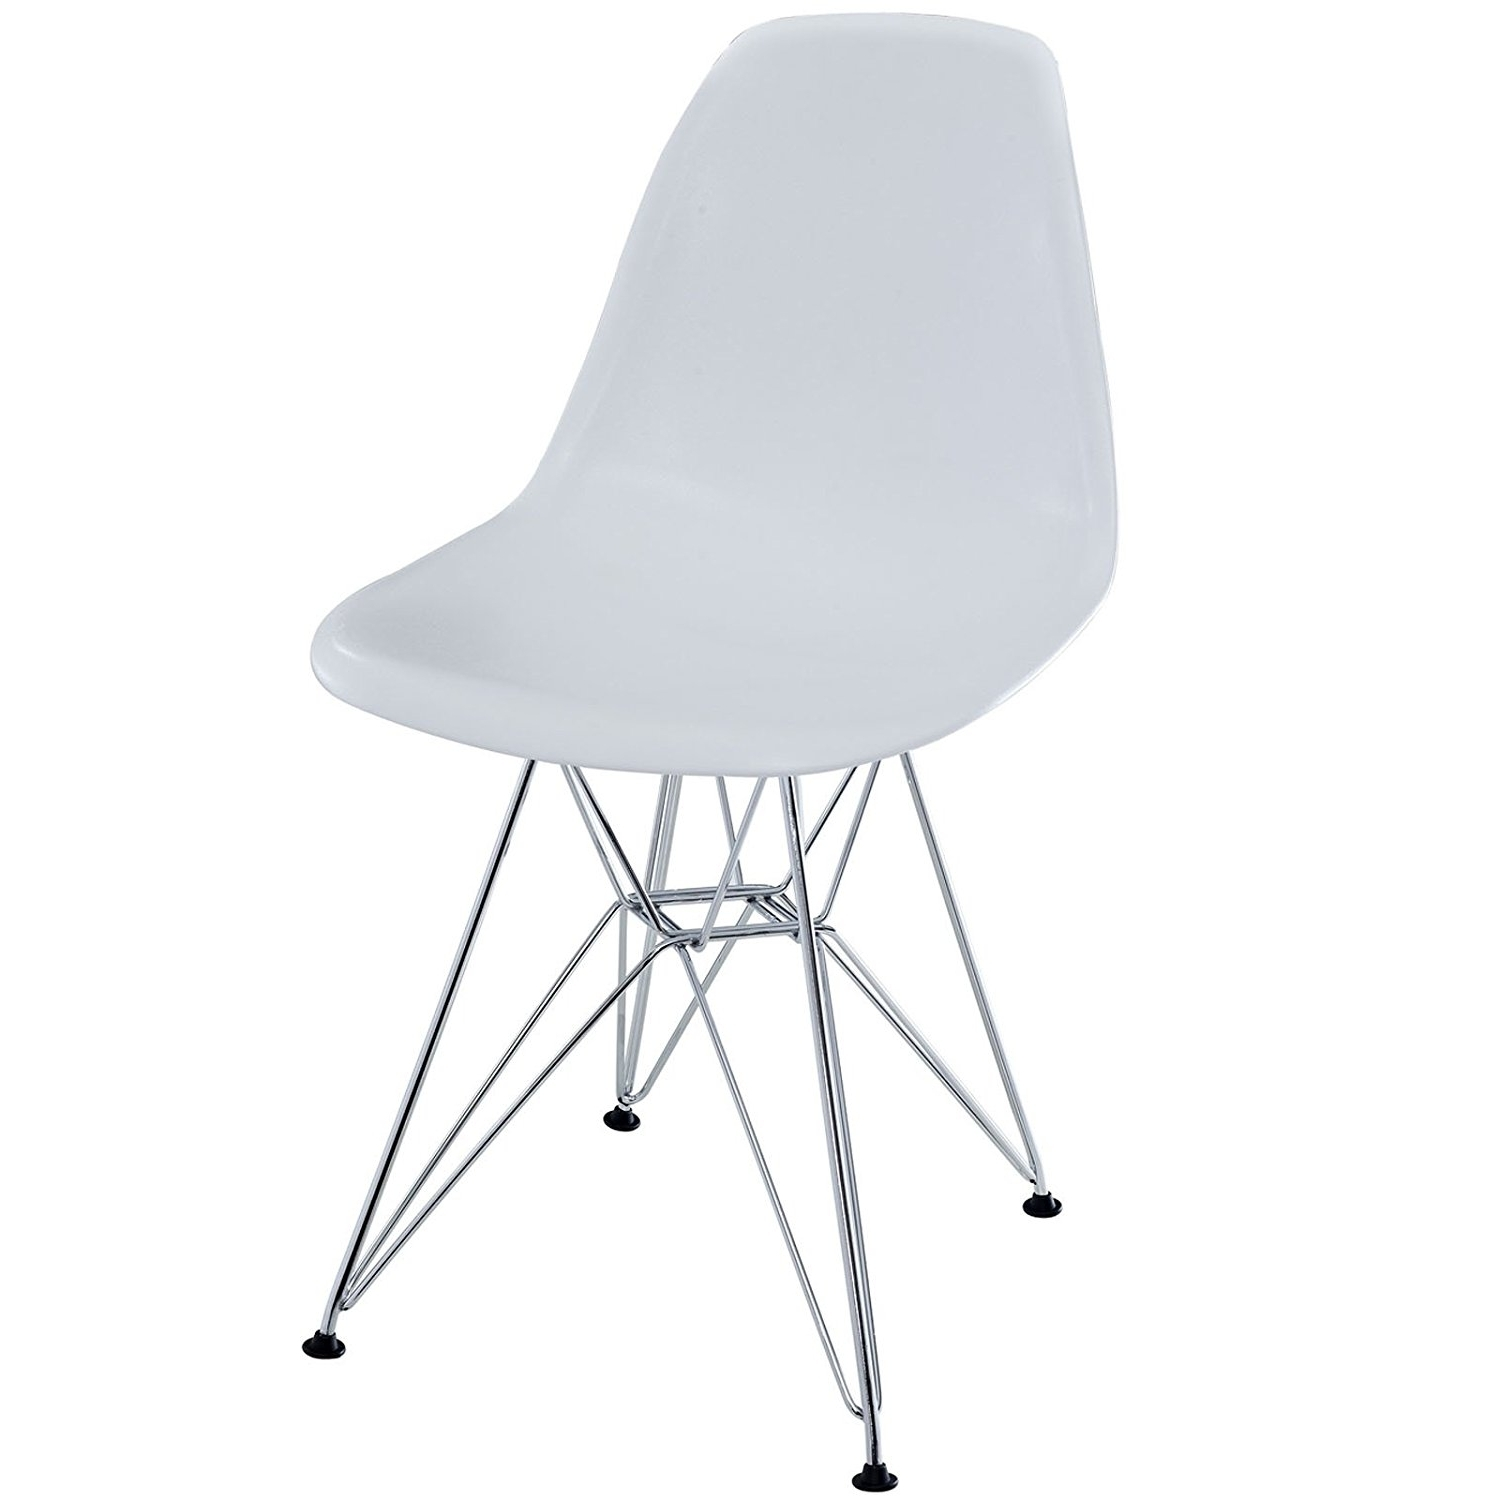 Furniture & Home Regarding Popular Celler Grey Side Chairs (View 15 of 20)